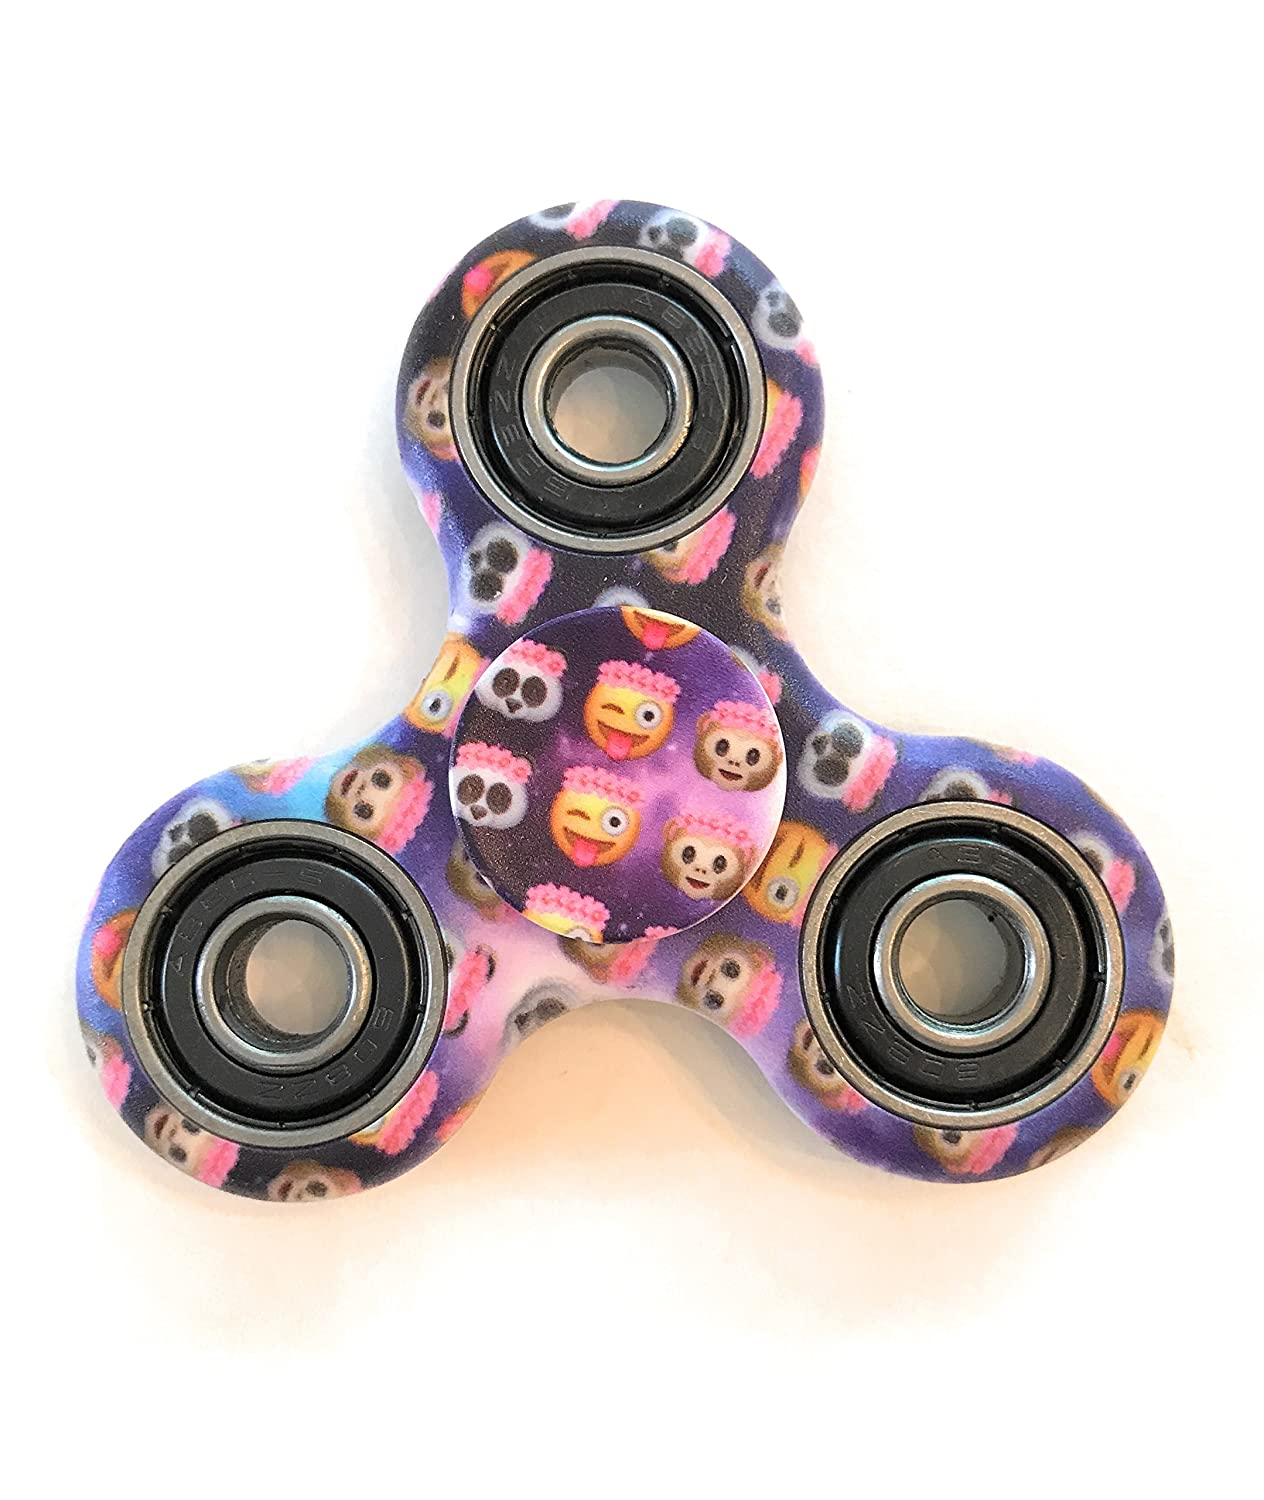 Spinner Squad High Speed Longest Spin Time Fidget Spinners flower crown emojis